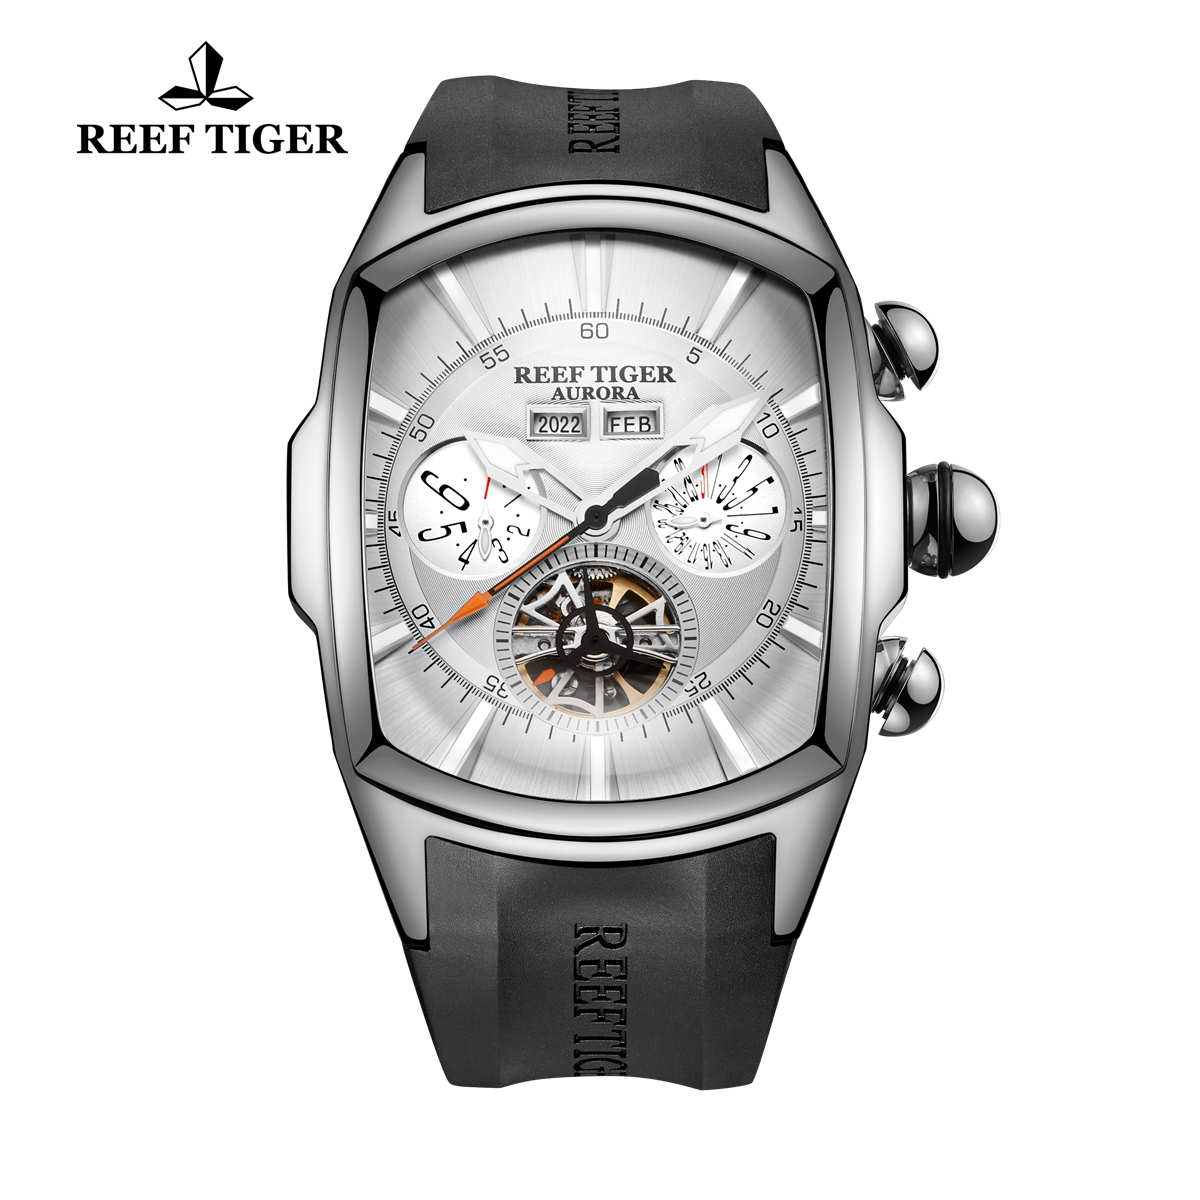 Reef Tiger Automatic Sport Watches Stainless Steel Case White Dial Rubber Strap Watches RGA3069-YWB